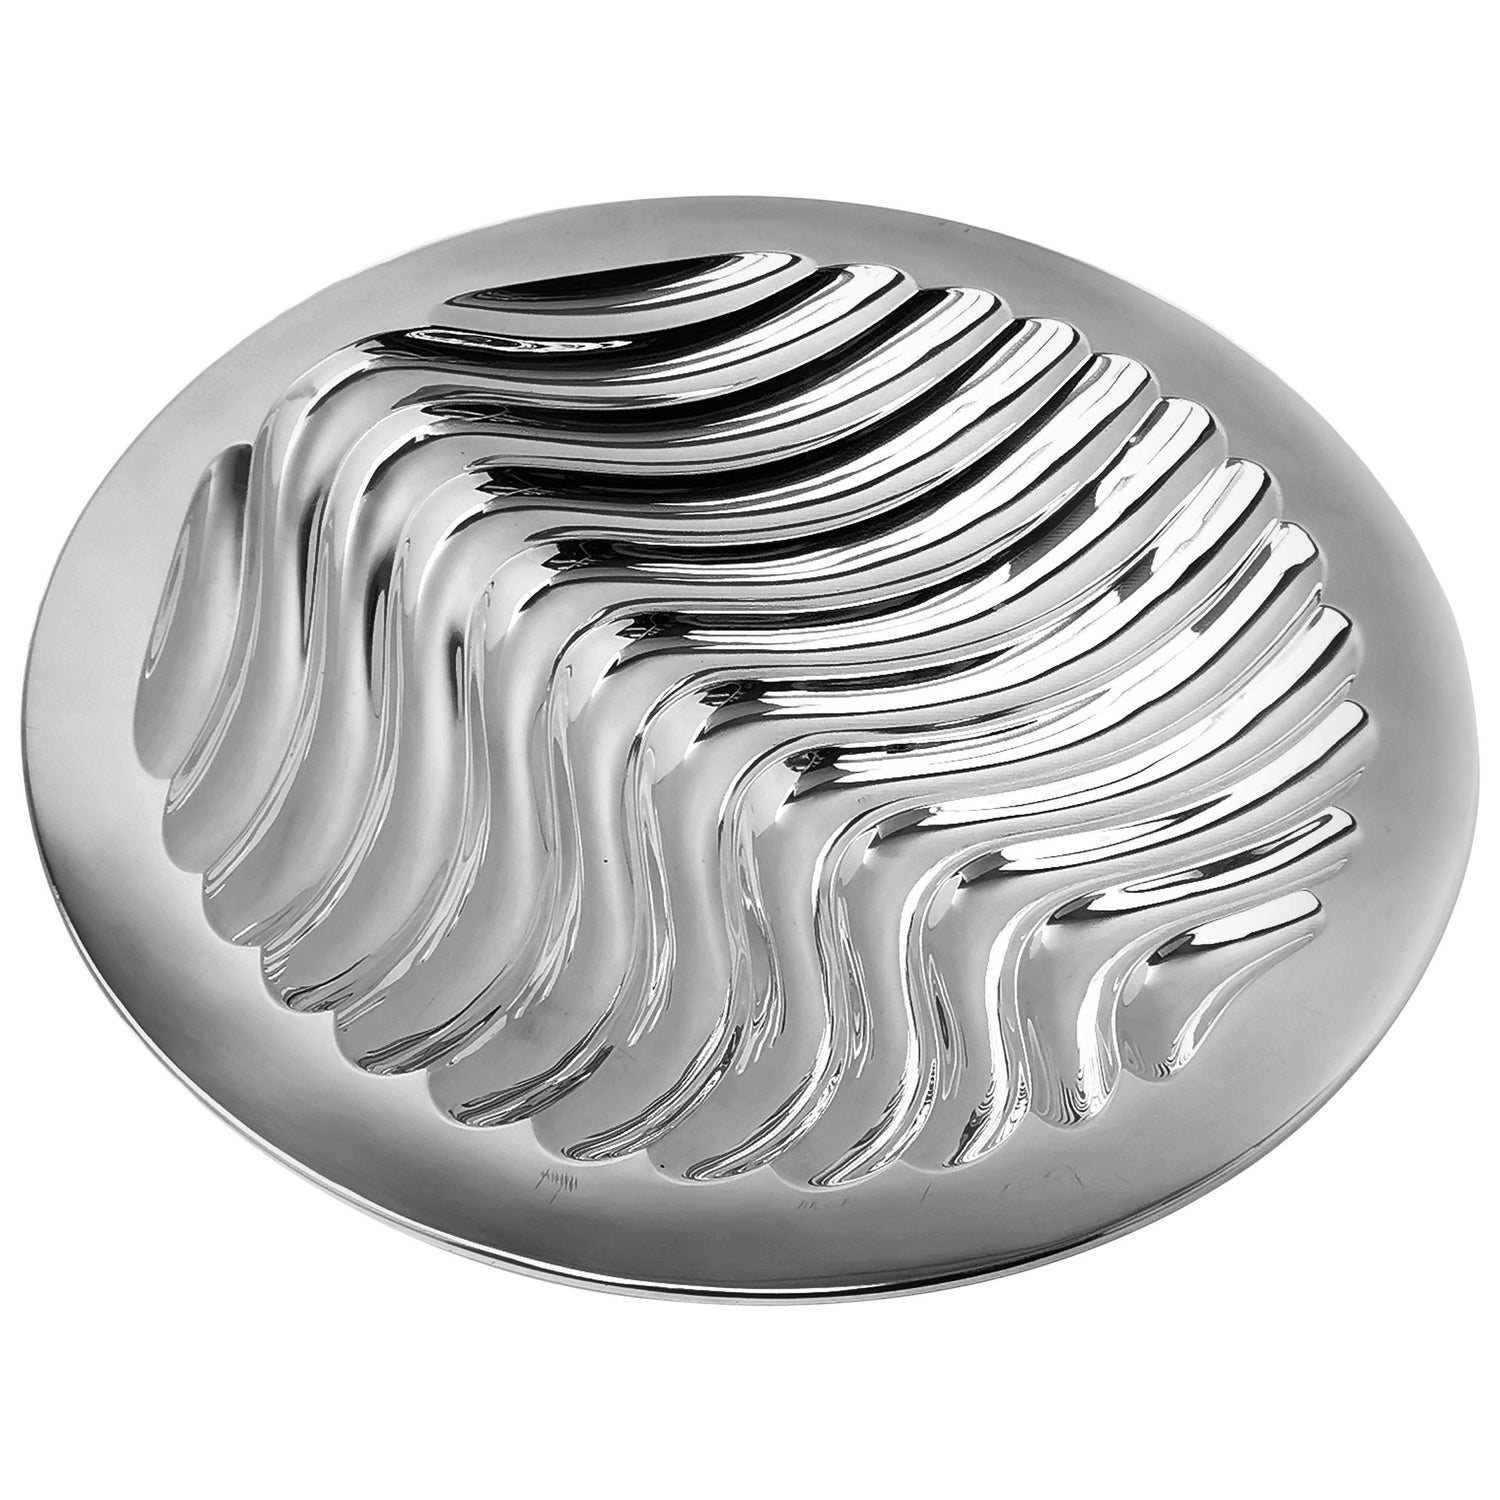 Contemporary Sterling Silver Bowl Round Double Skinned Wave Alex Brogden 1993